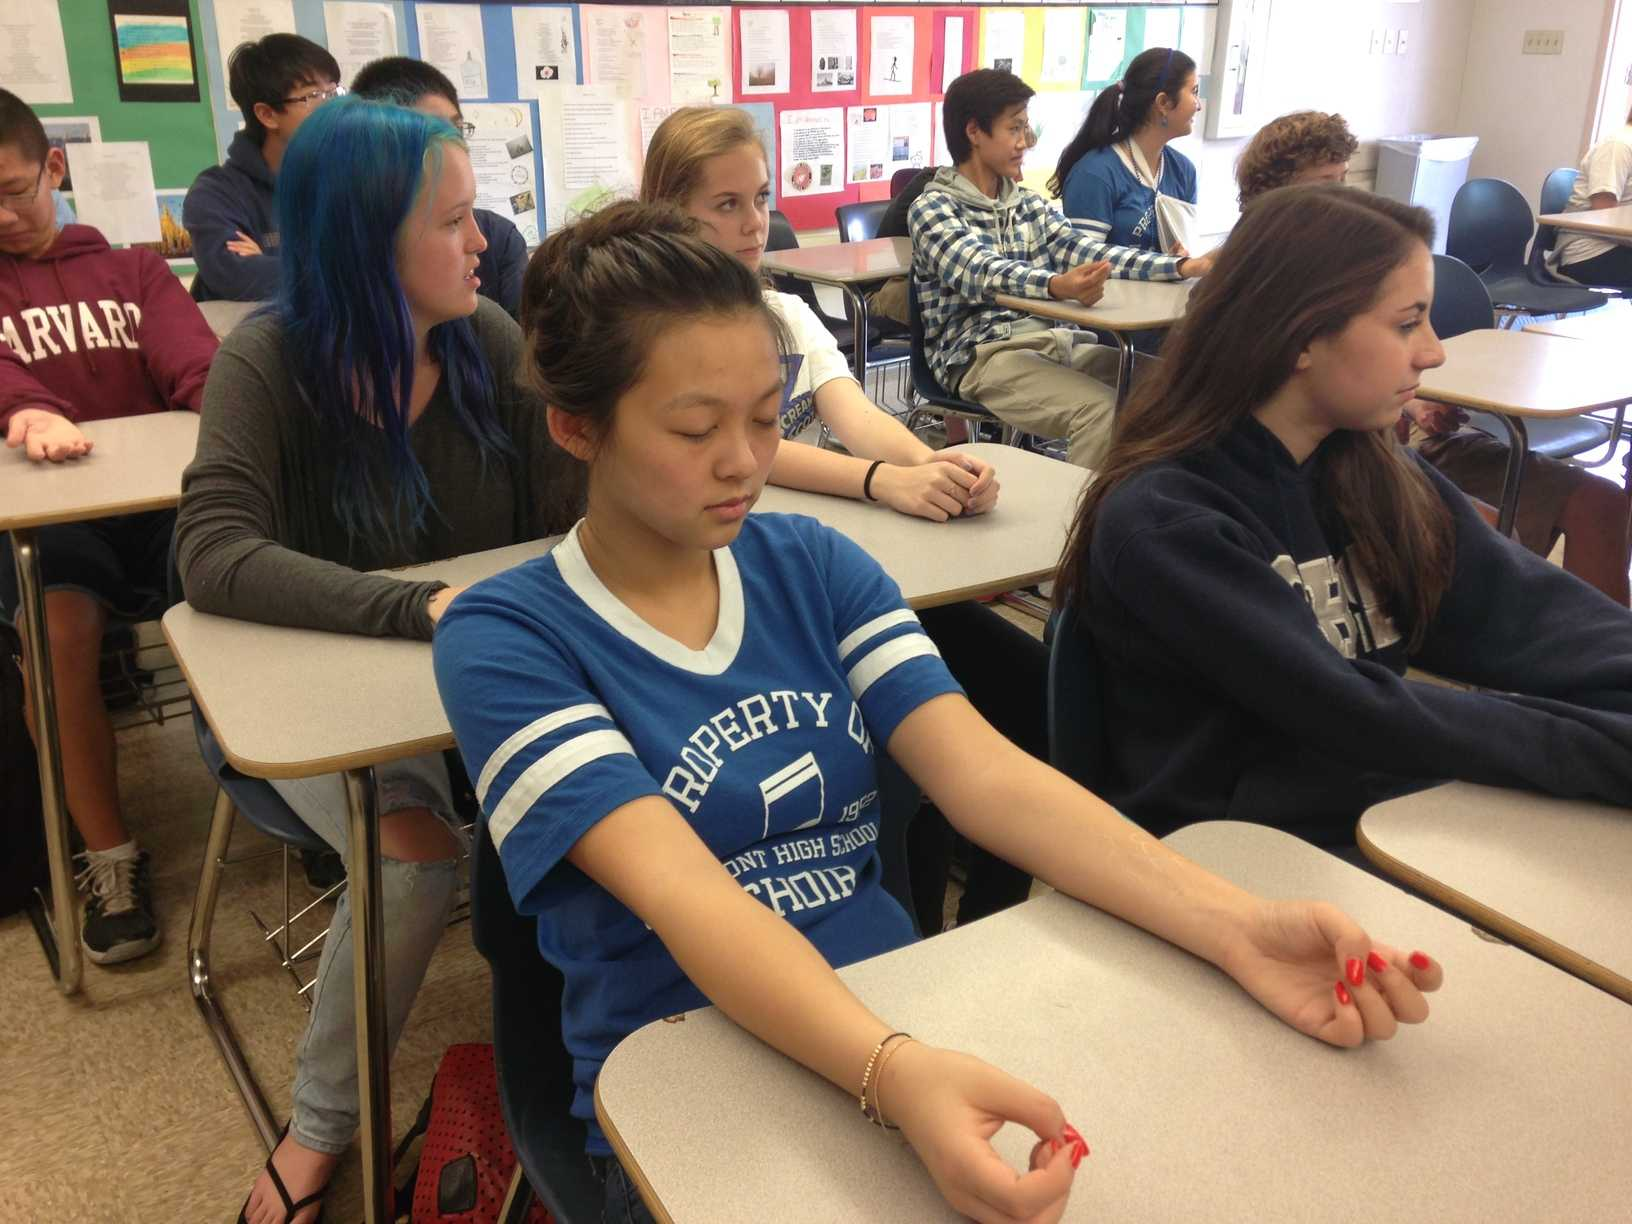 Lydia Lelapinyokul destresses through guided meditation before a quiz.